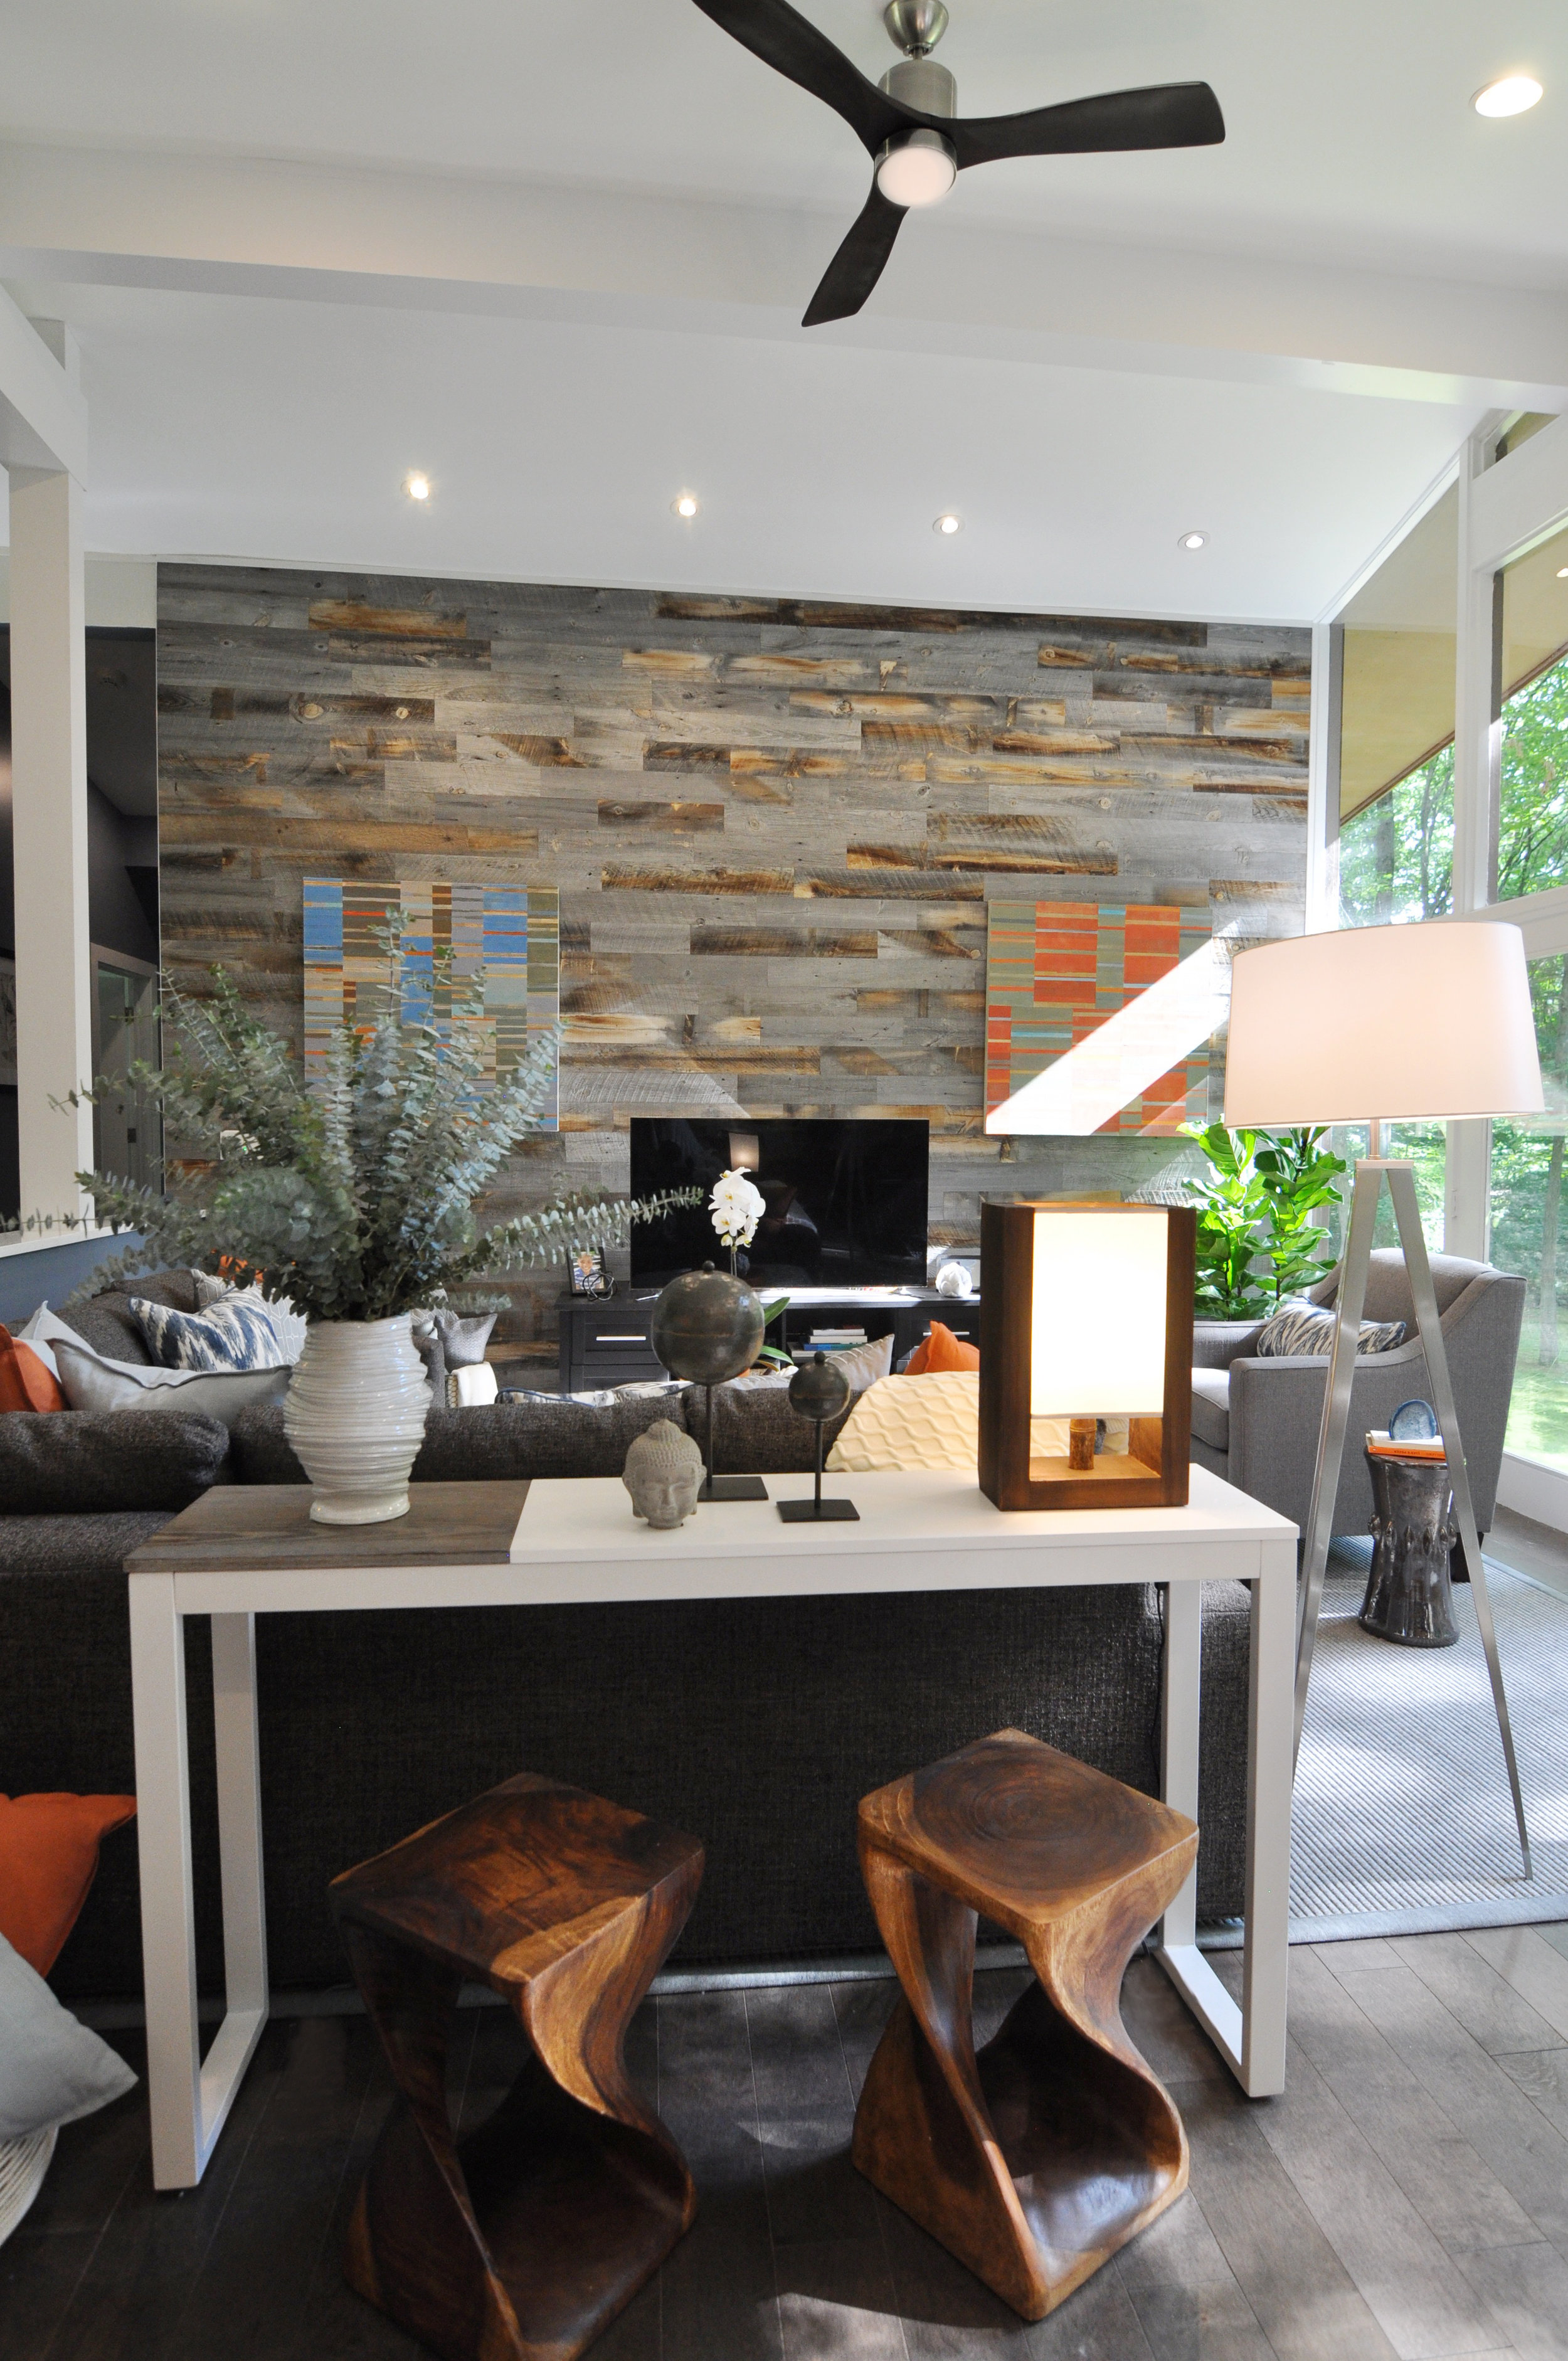 Kim A Mitchell_Design Lead_HGTV_The Property Brothers_Season 6_Episode 9_View from Family Room_Living Room_Reclaimed Wood Wall_2017_Soft Modern.jpg